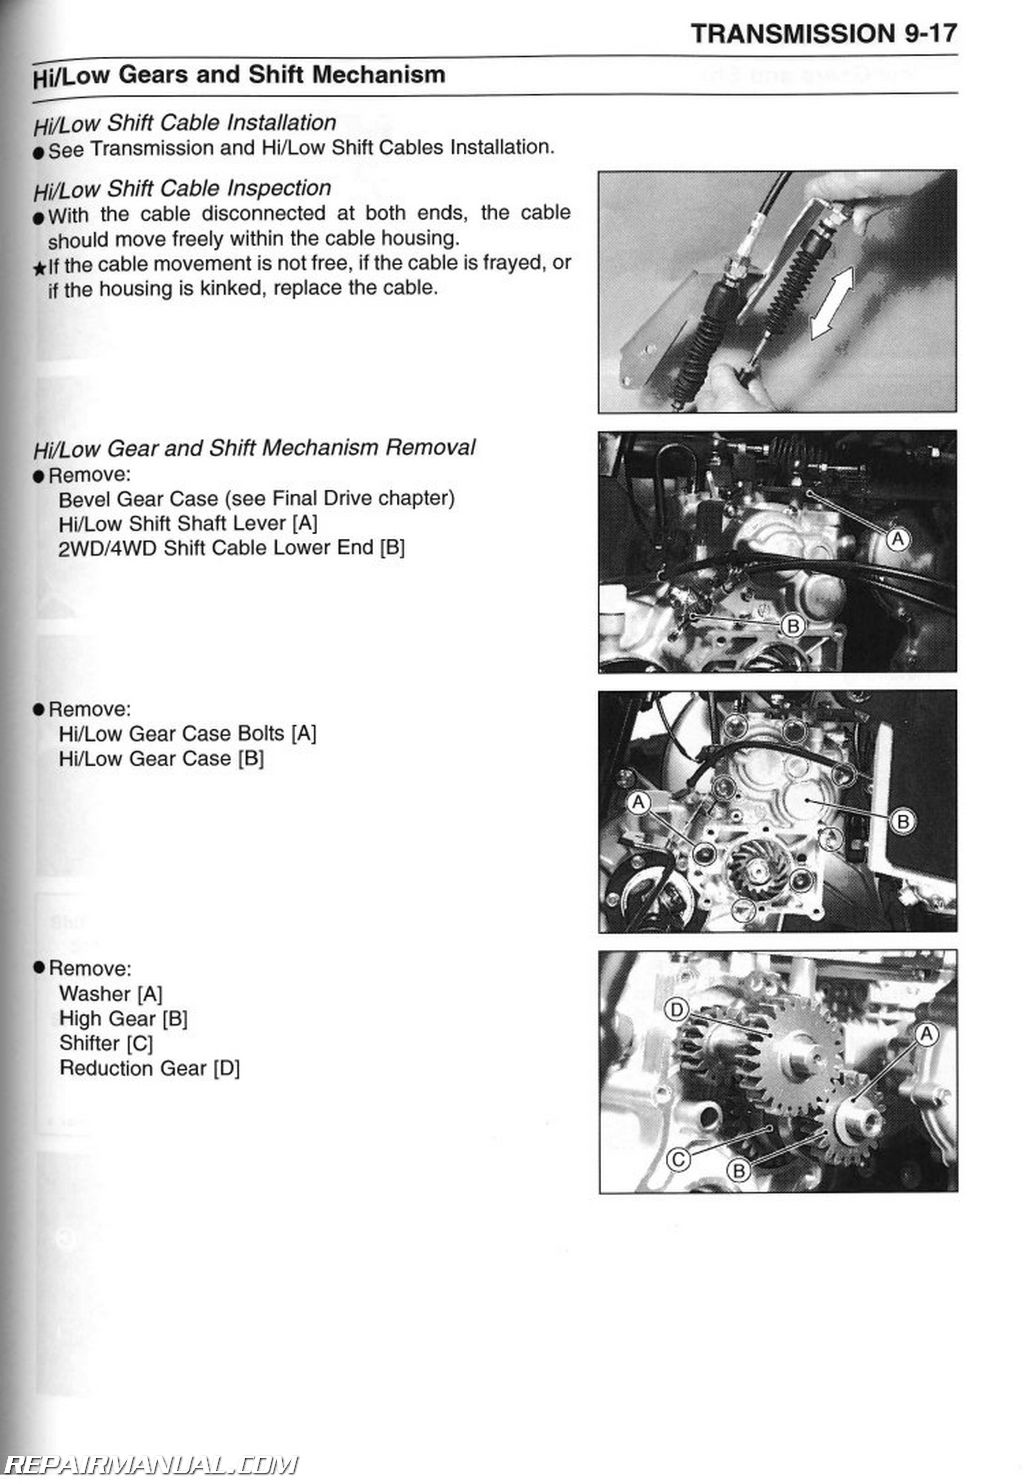 2006 Kawasaki Mule 3010 Repair Manual Various Owner Guide Wiring Diagram For 2001 2008 Kaf620 3000 3020 Service Rh Repairmanual Com 2003 Parts